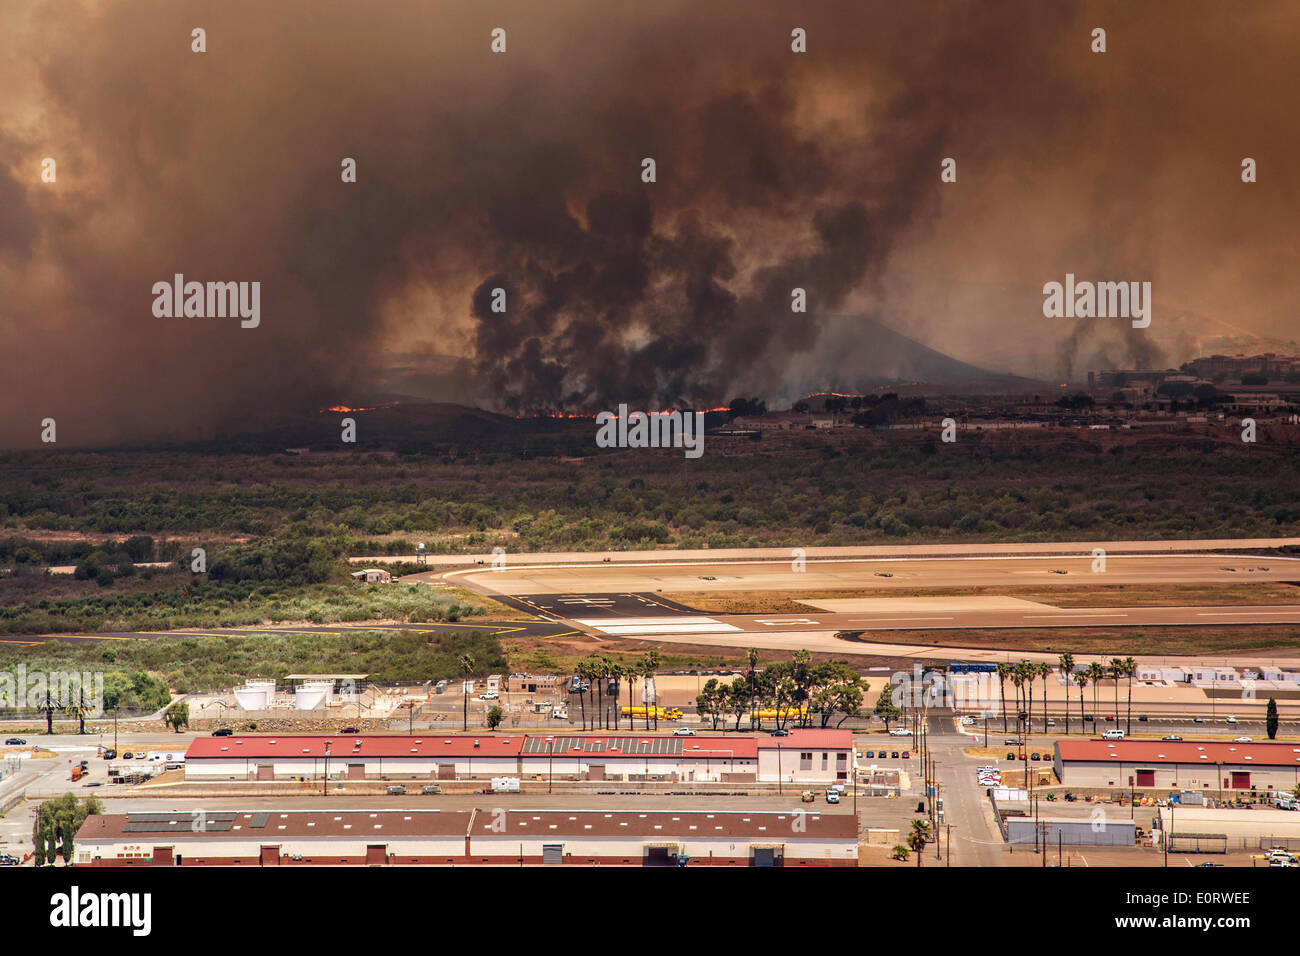 The Las Pulgas wildfire burns along the runway in the foothills around the Marine Corps Air Station May 16, 2014 in Camp Pendleton, California. - Stock Image